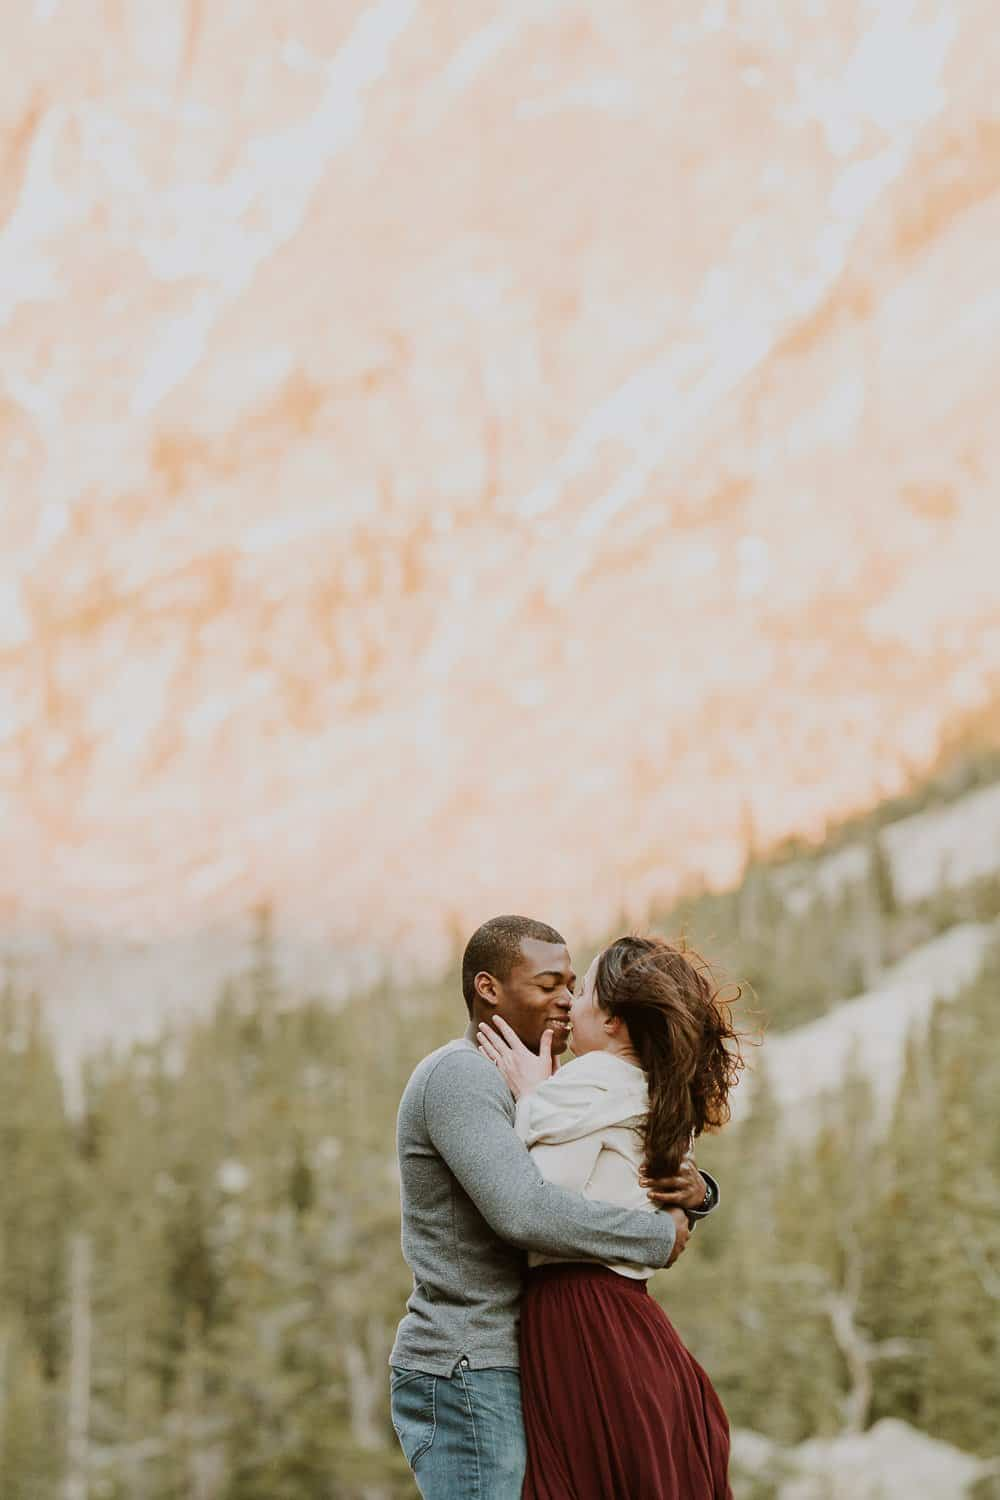 DREAM LAKE HIKING ENGAGEMENT I Intimate Wedding Photographer I ROCKY MOUNTAIN ELOPEMENT PHOTOGRAPHER| JUSTYNA E BUTLER PHOTOGRAPHY | ROCKY MOUNTAIN NATIONAL PARK ELOPEMENT PHOTOGRAPHER| COLORADO MOUNTAIN ADVENTUROUS ELOPEMENT PHOTOGRAPHER|INTIMATE WEDDING COLLECTIONS |ADVENTUROUS ELOPEMENT COLLECTIONS